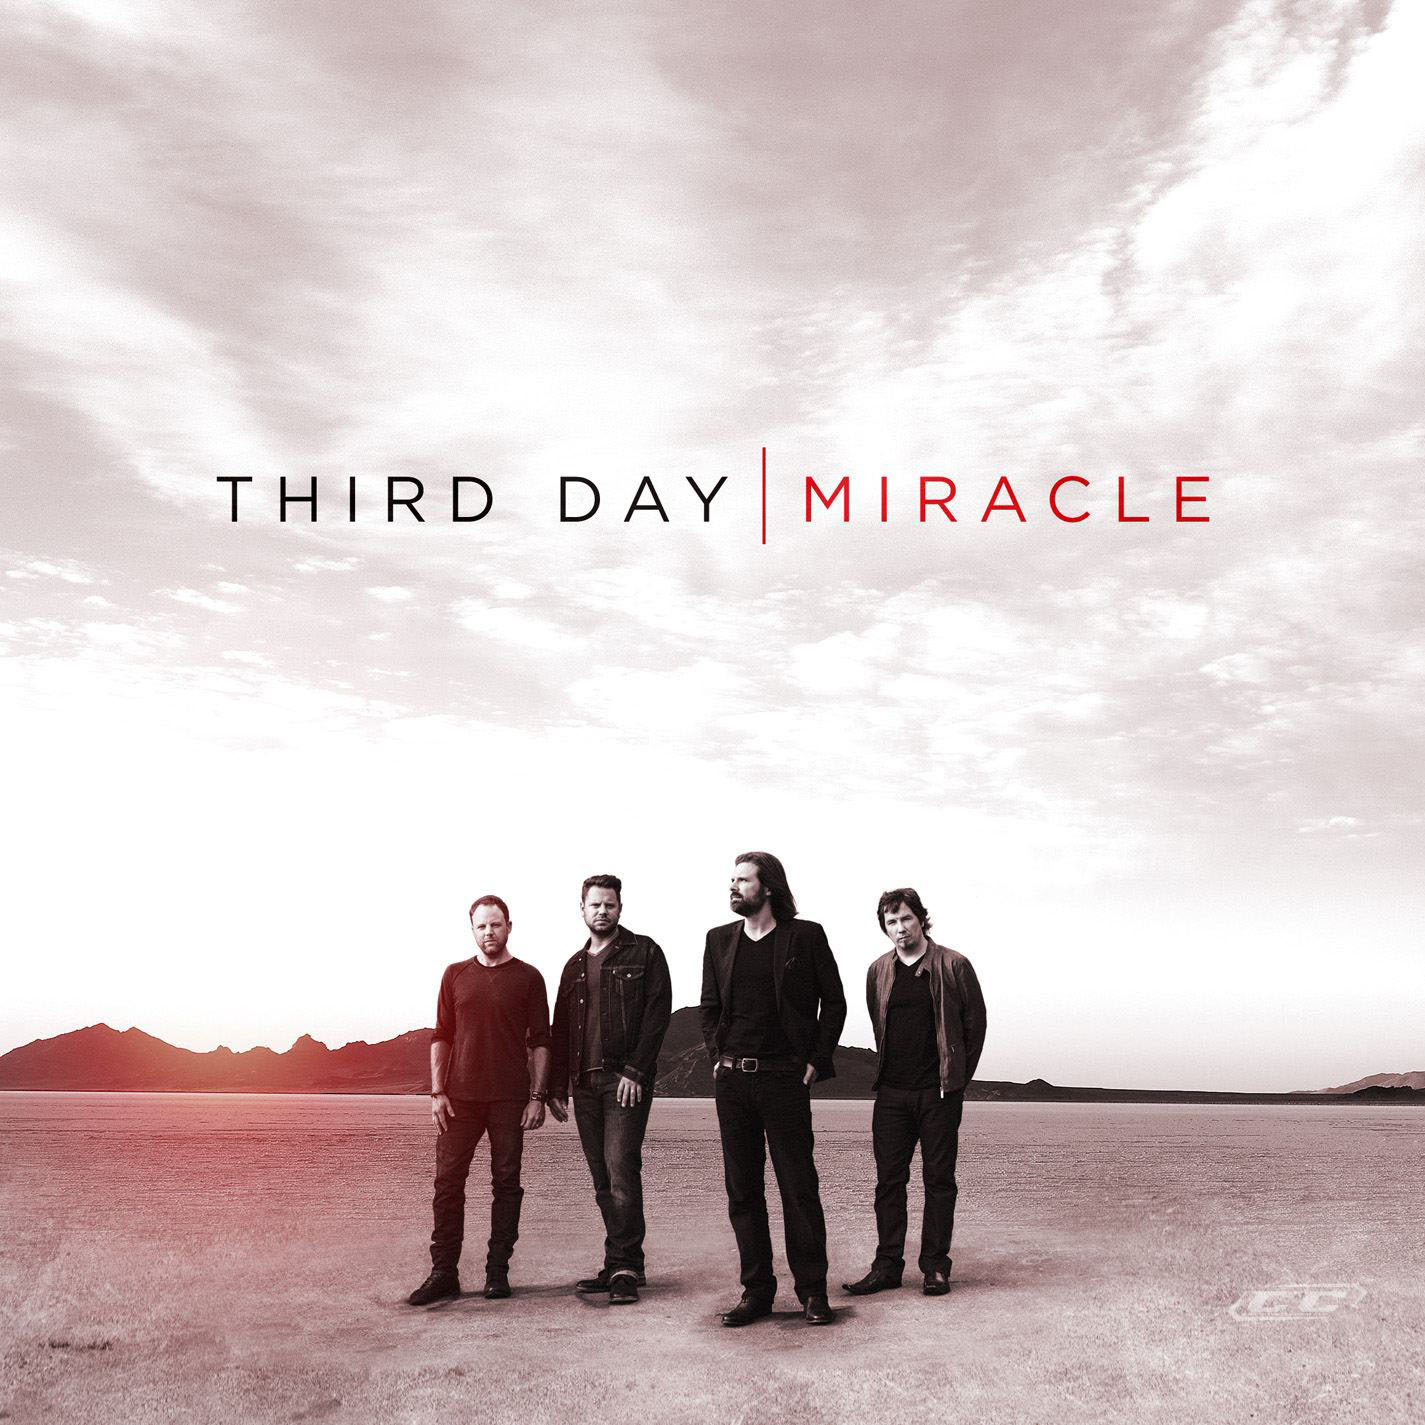 Third Day - Miracle 2012 English Christian Album Download